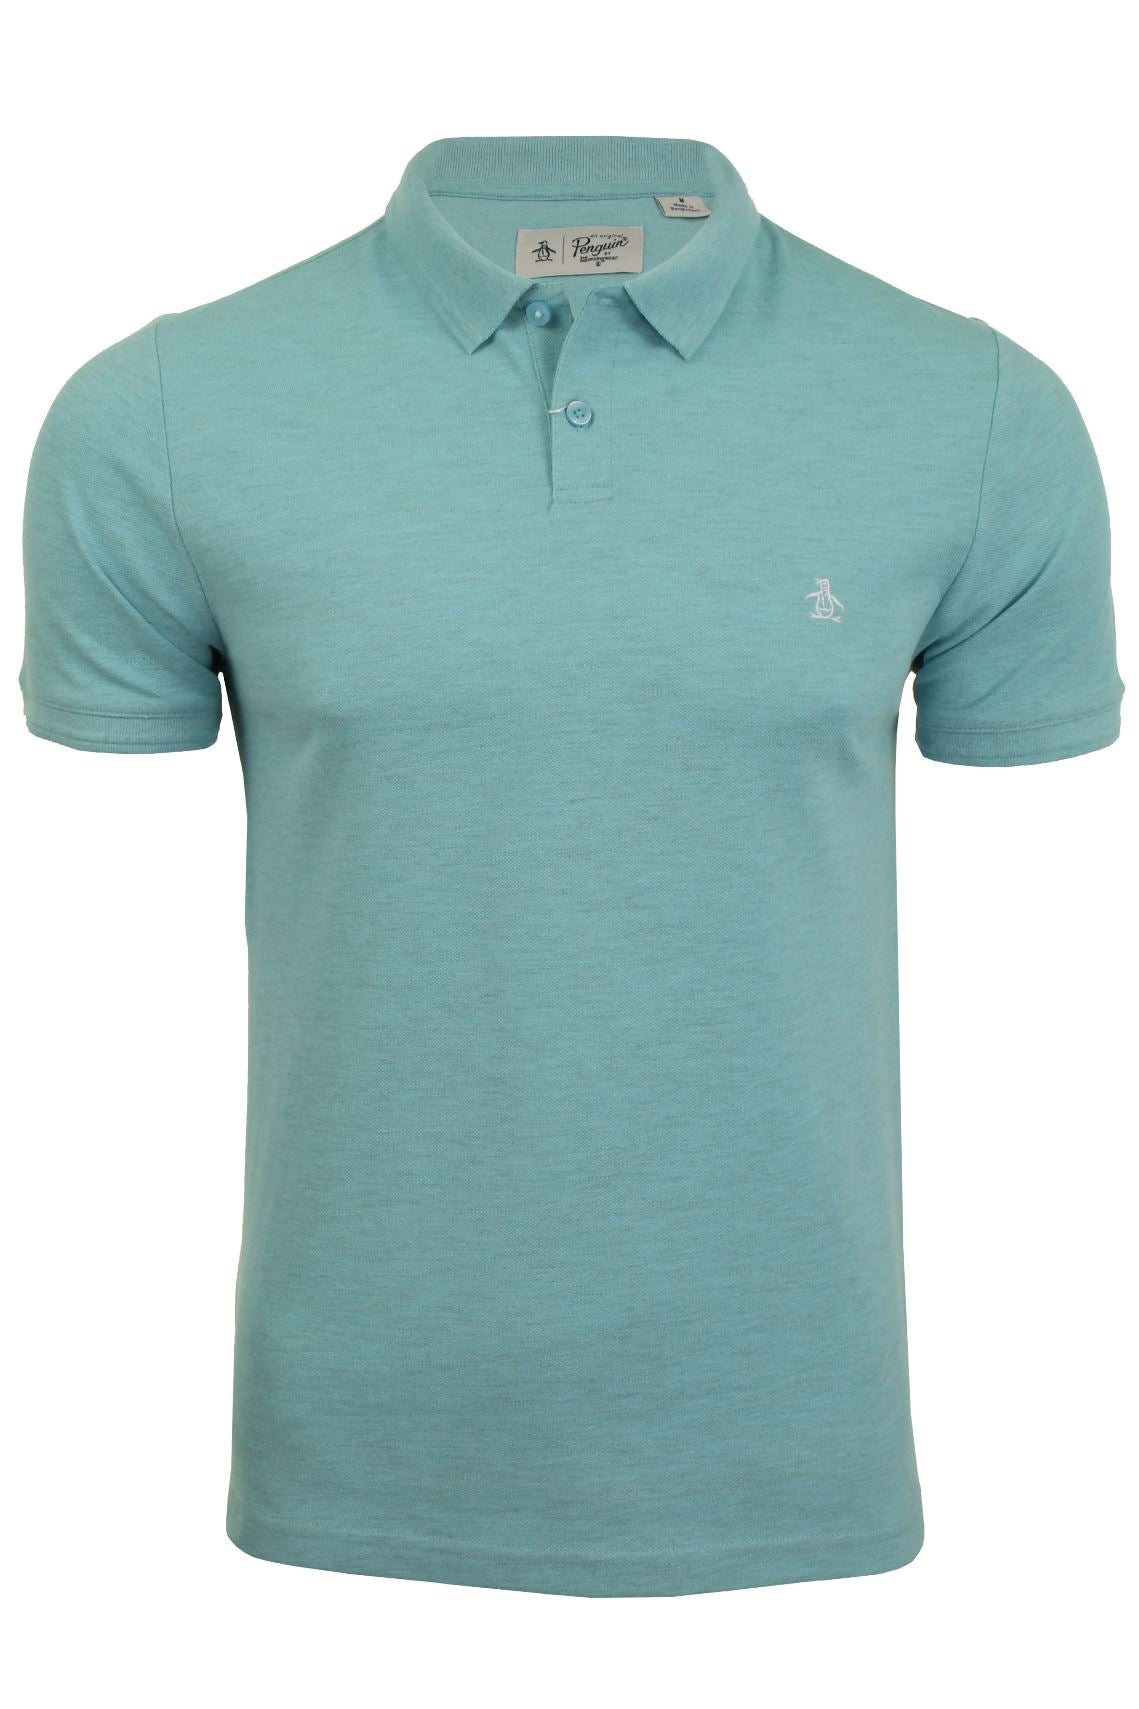 Mens Original Penguin Pique Polo T-Shirt - Short Sleeved-Main Image